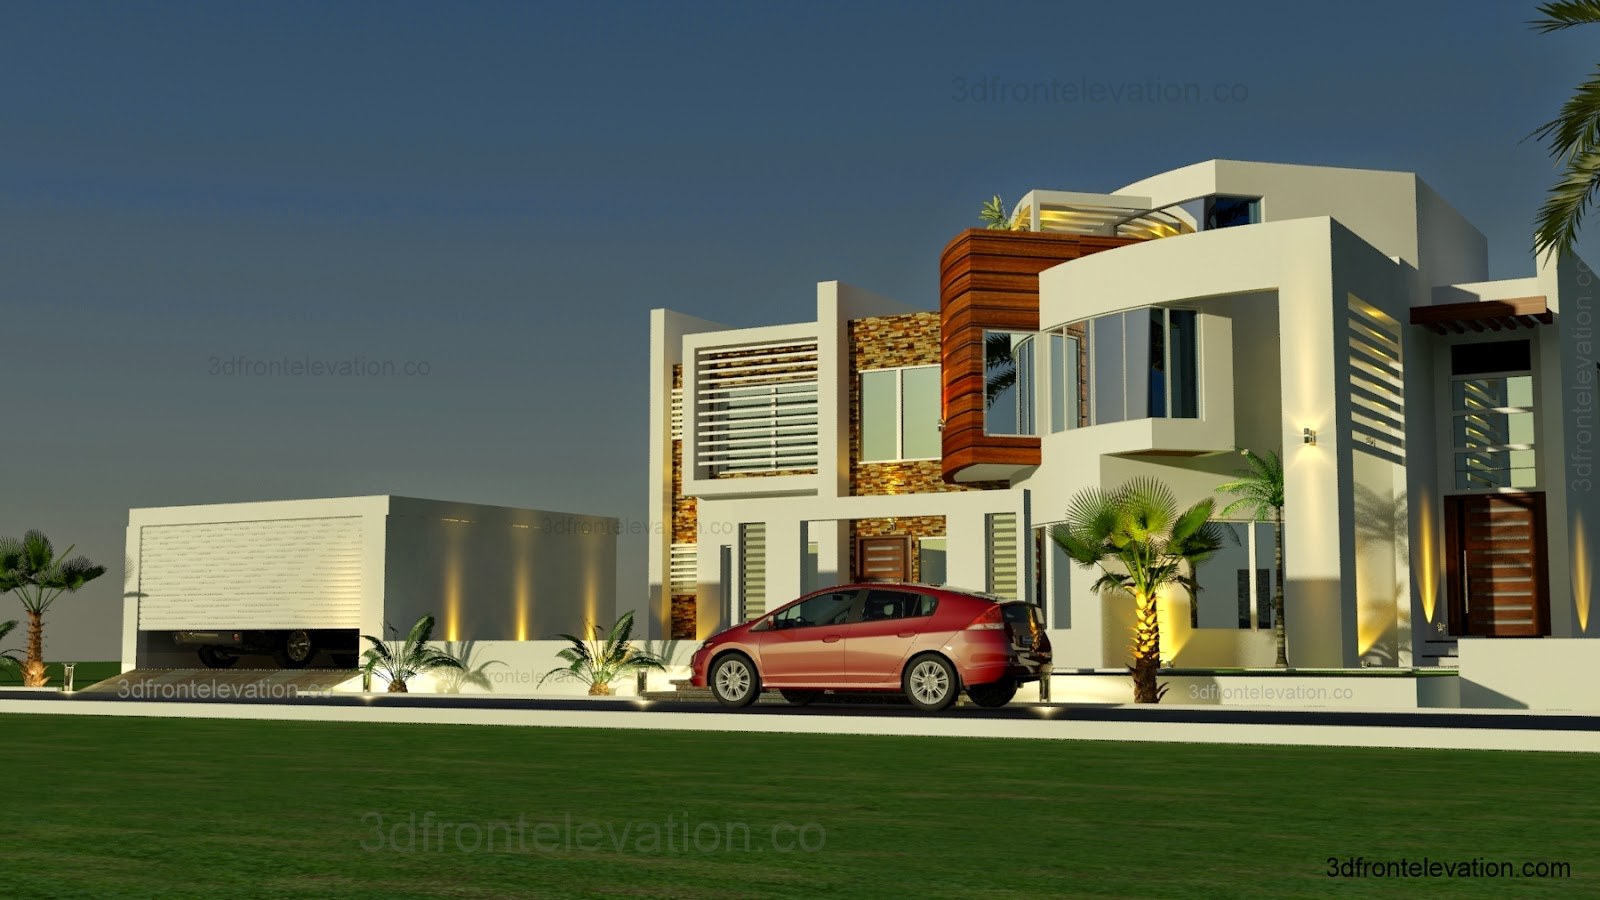 Front Elevation House Dubai : D front elevation oman modern contemporary villa